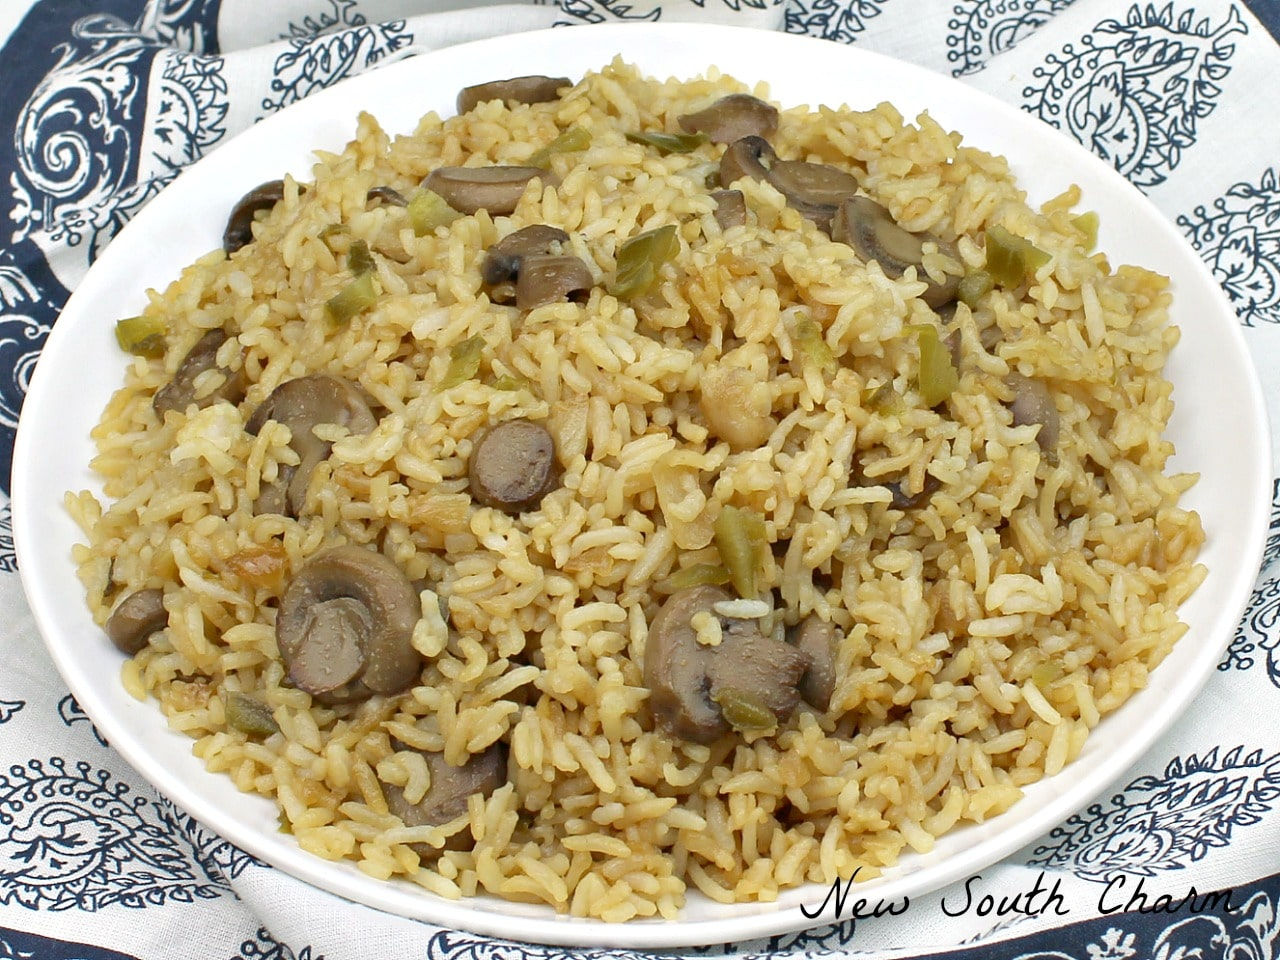 Spicy mushroom fried rice new south charm today im partnering with veetee rice to share this recipe for spicy mushroom fried rice this is a quick easy side dish thats will shake up your dinner ccuart Gallery